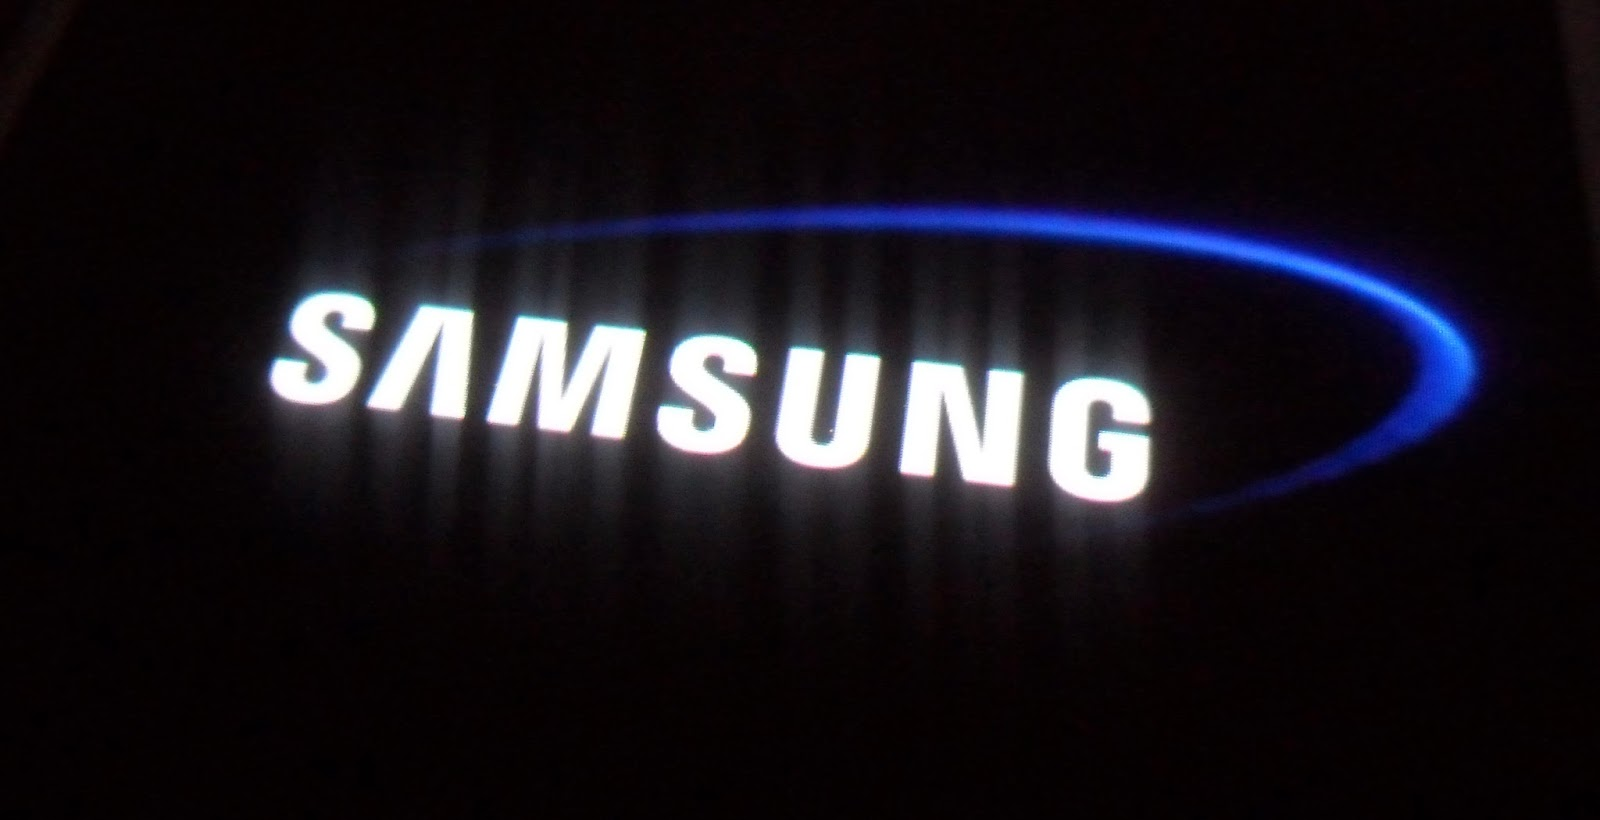 Samsung Electronics Warns Of Difficult 2016 As Smartphone